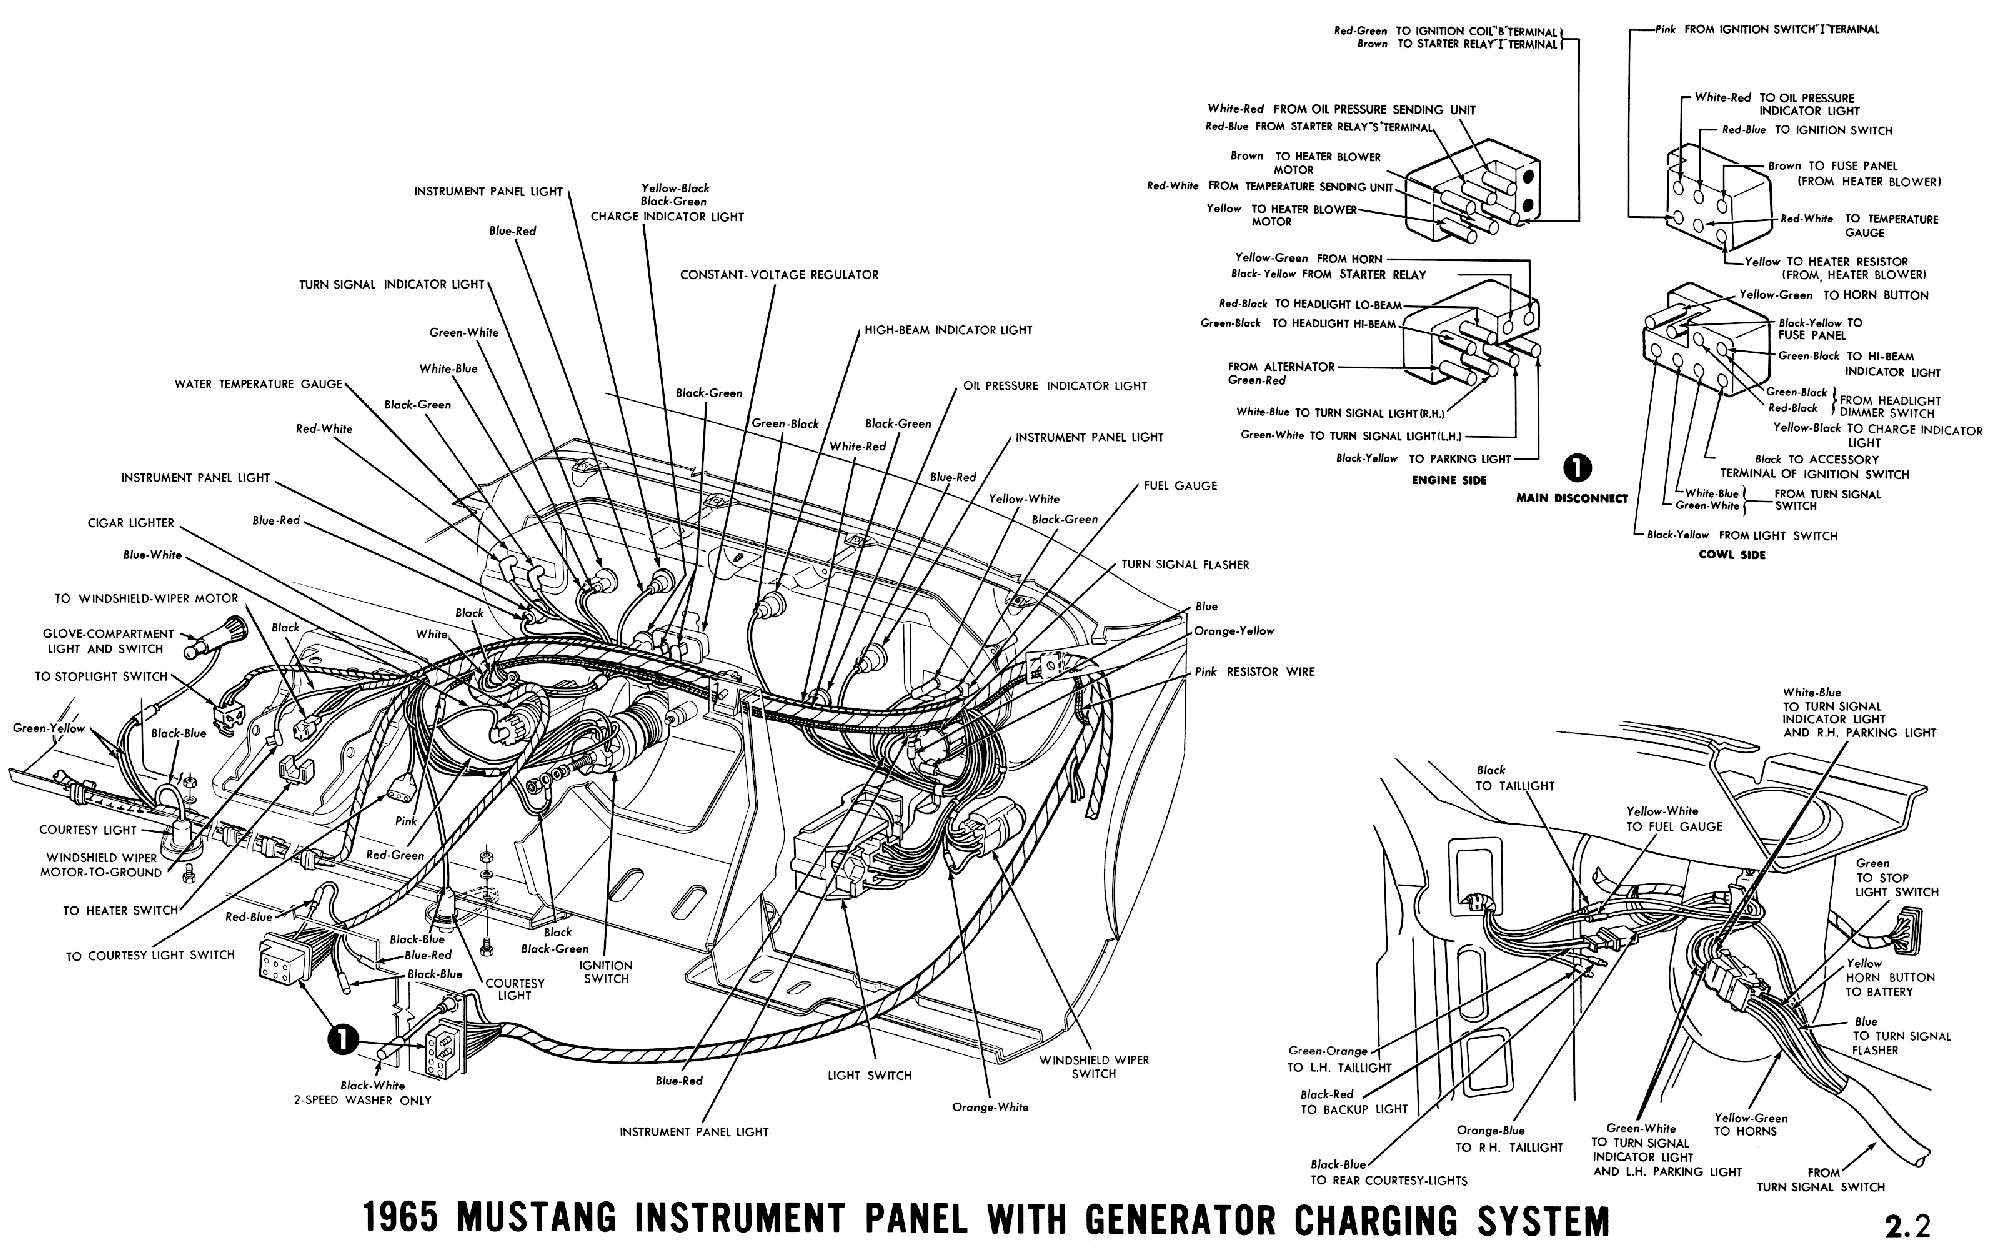 1965 Mustang Wiring Diagrams Average Joe Restoration Cigarette Lighter Adapter Diagram Ford Included This Modified Version Of The